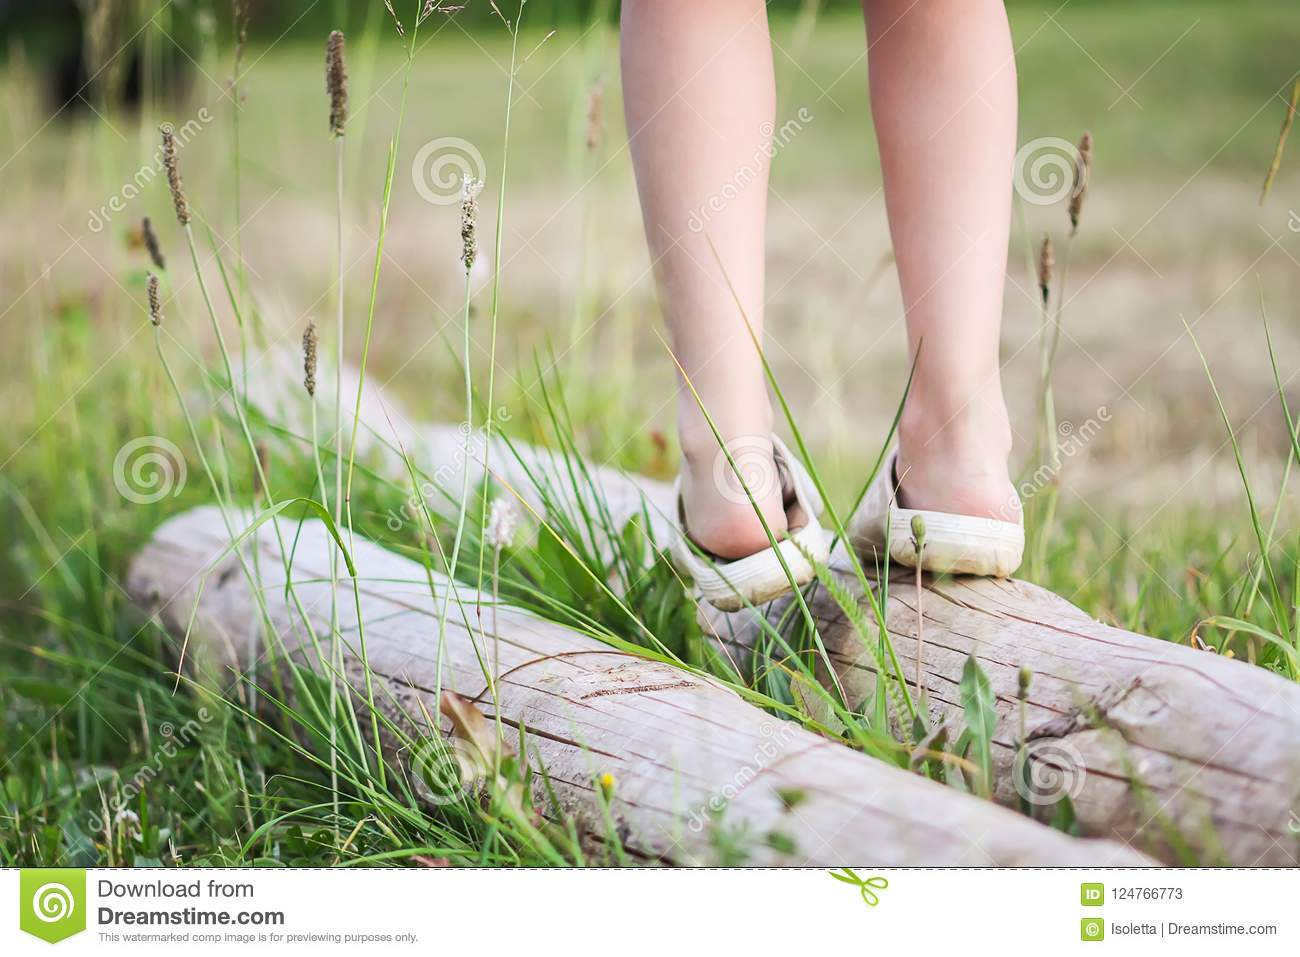 Little girl balancing on a log in summer park. Child& x27;s legs and green grass close up.